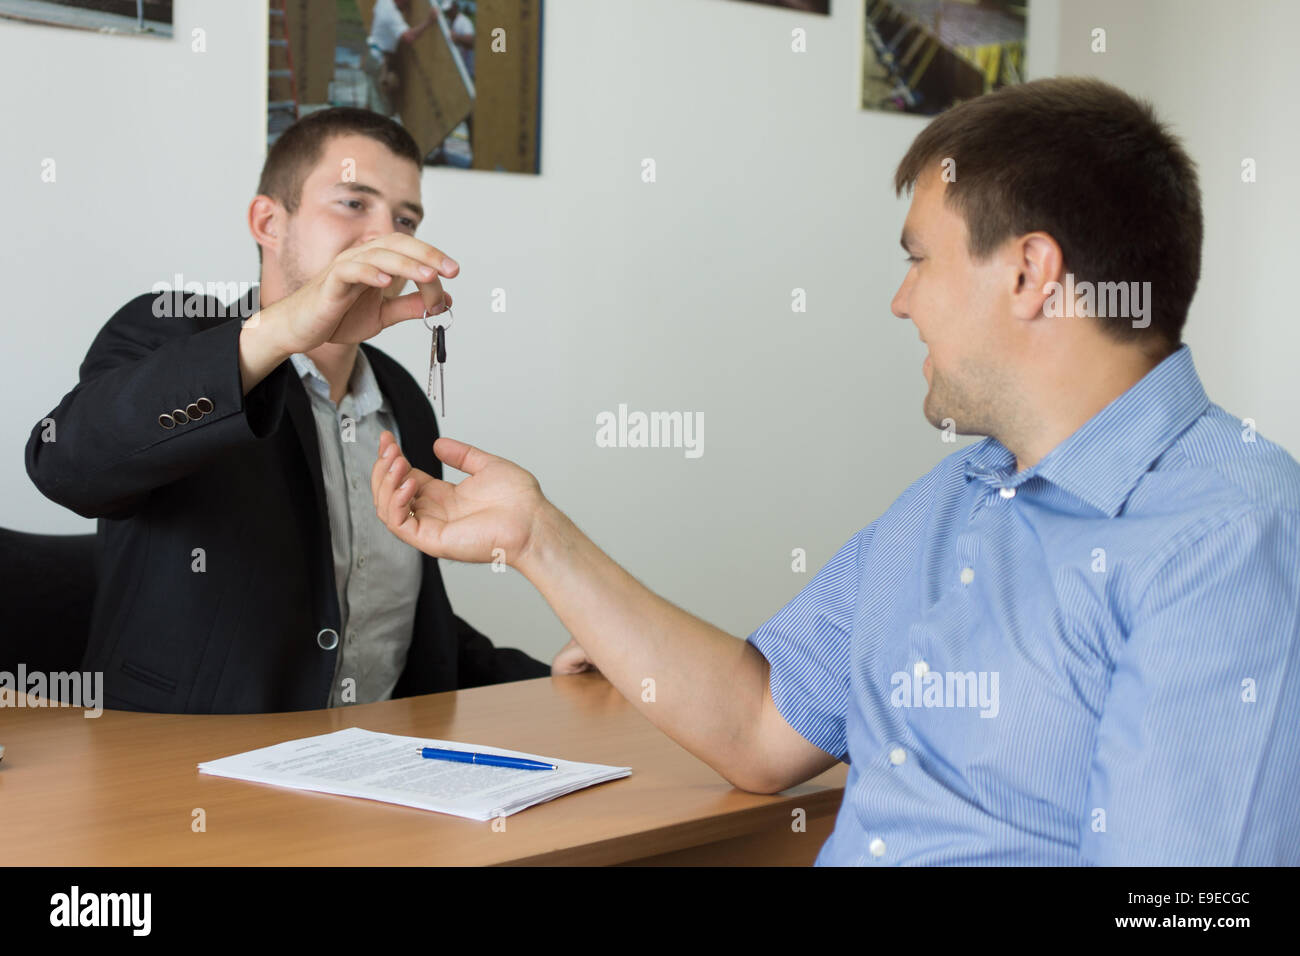 Estate agent or car salesman completing a deal and handing over the keys to the new purchaser in his office - Stock Image